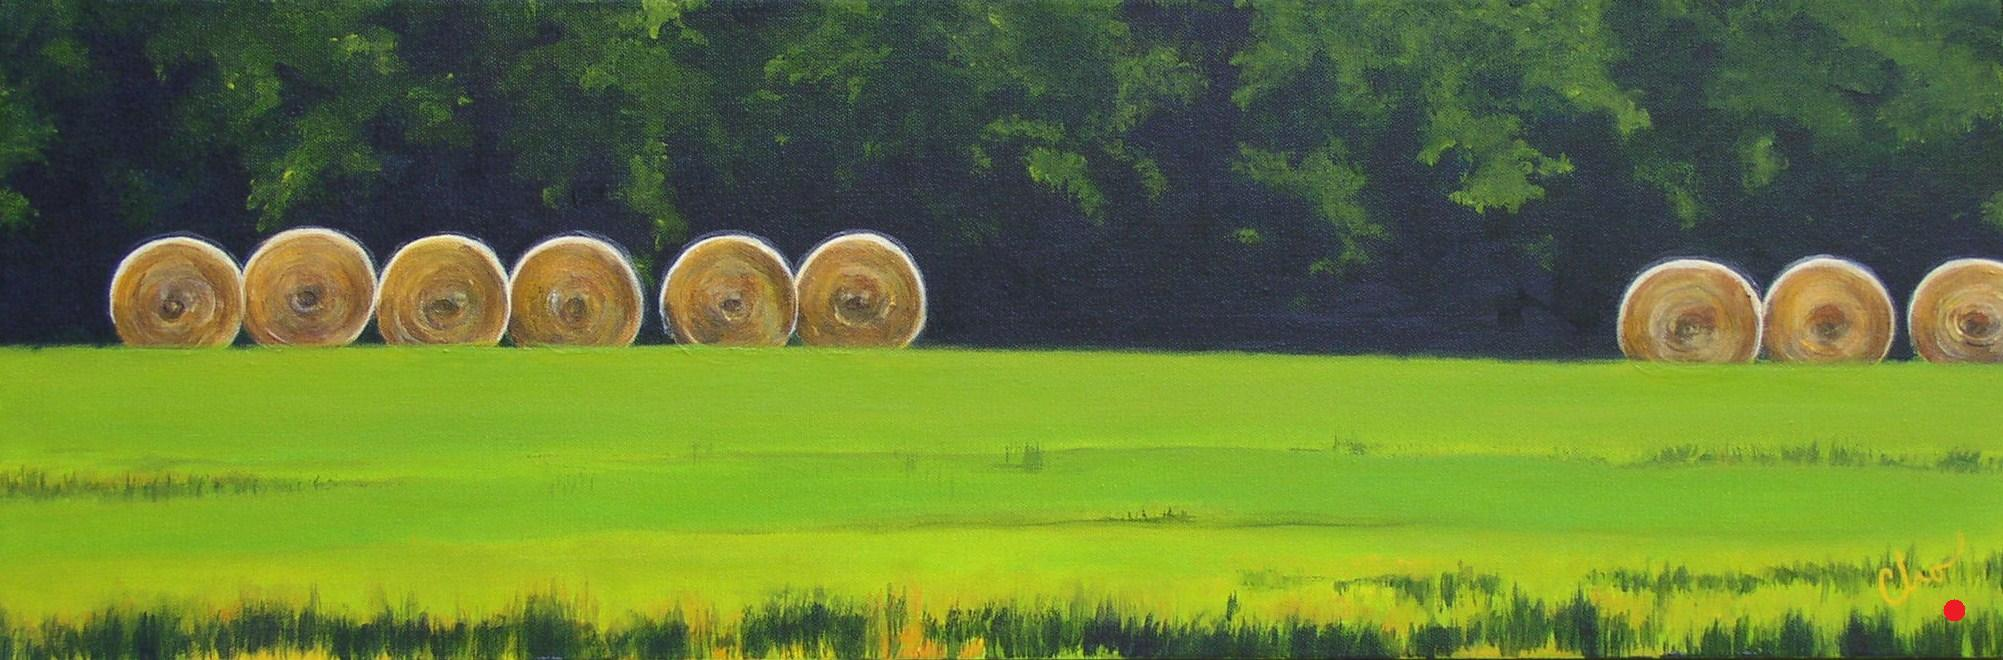 Haybales 10x30 June 2011 003 - Copy - Copy.JPG